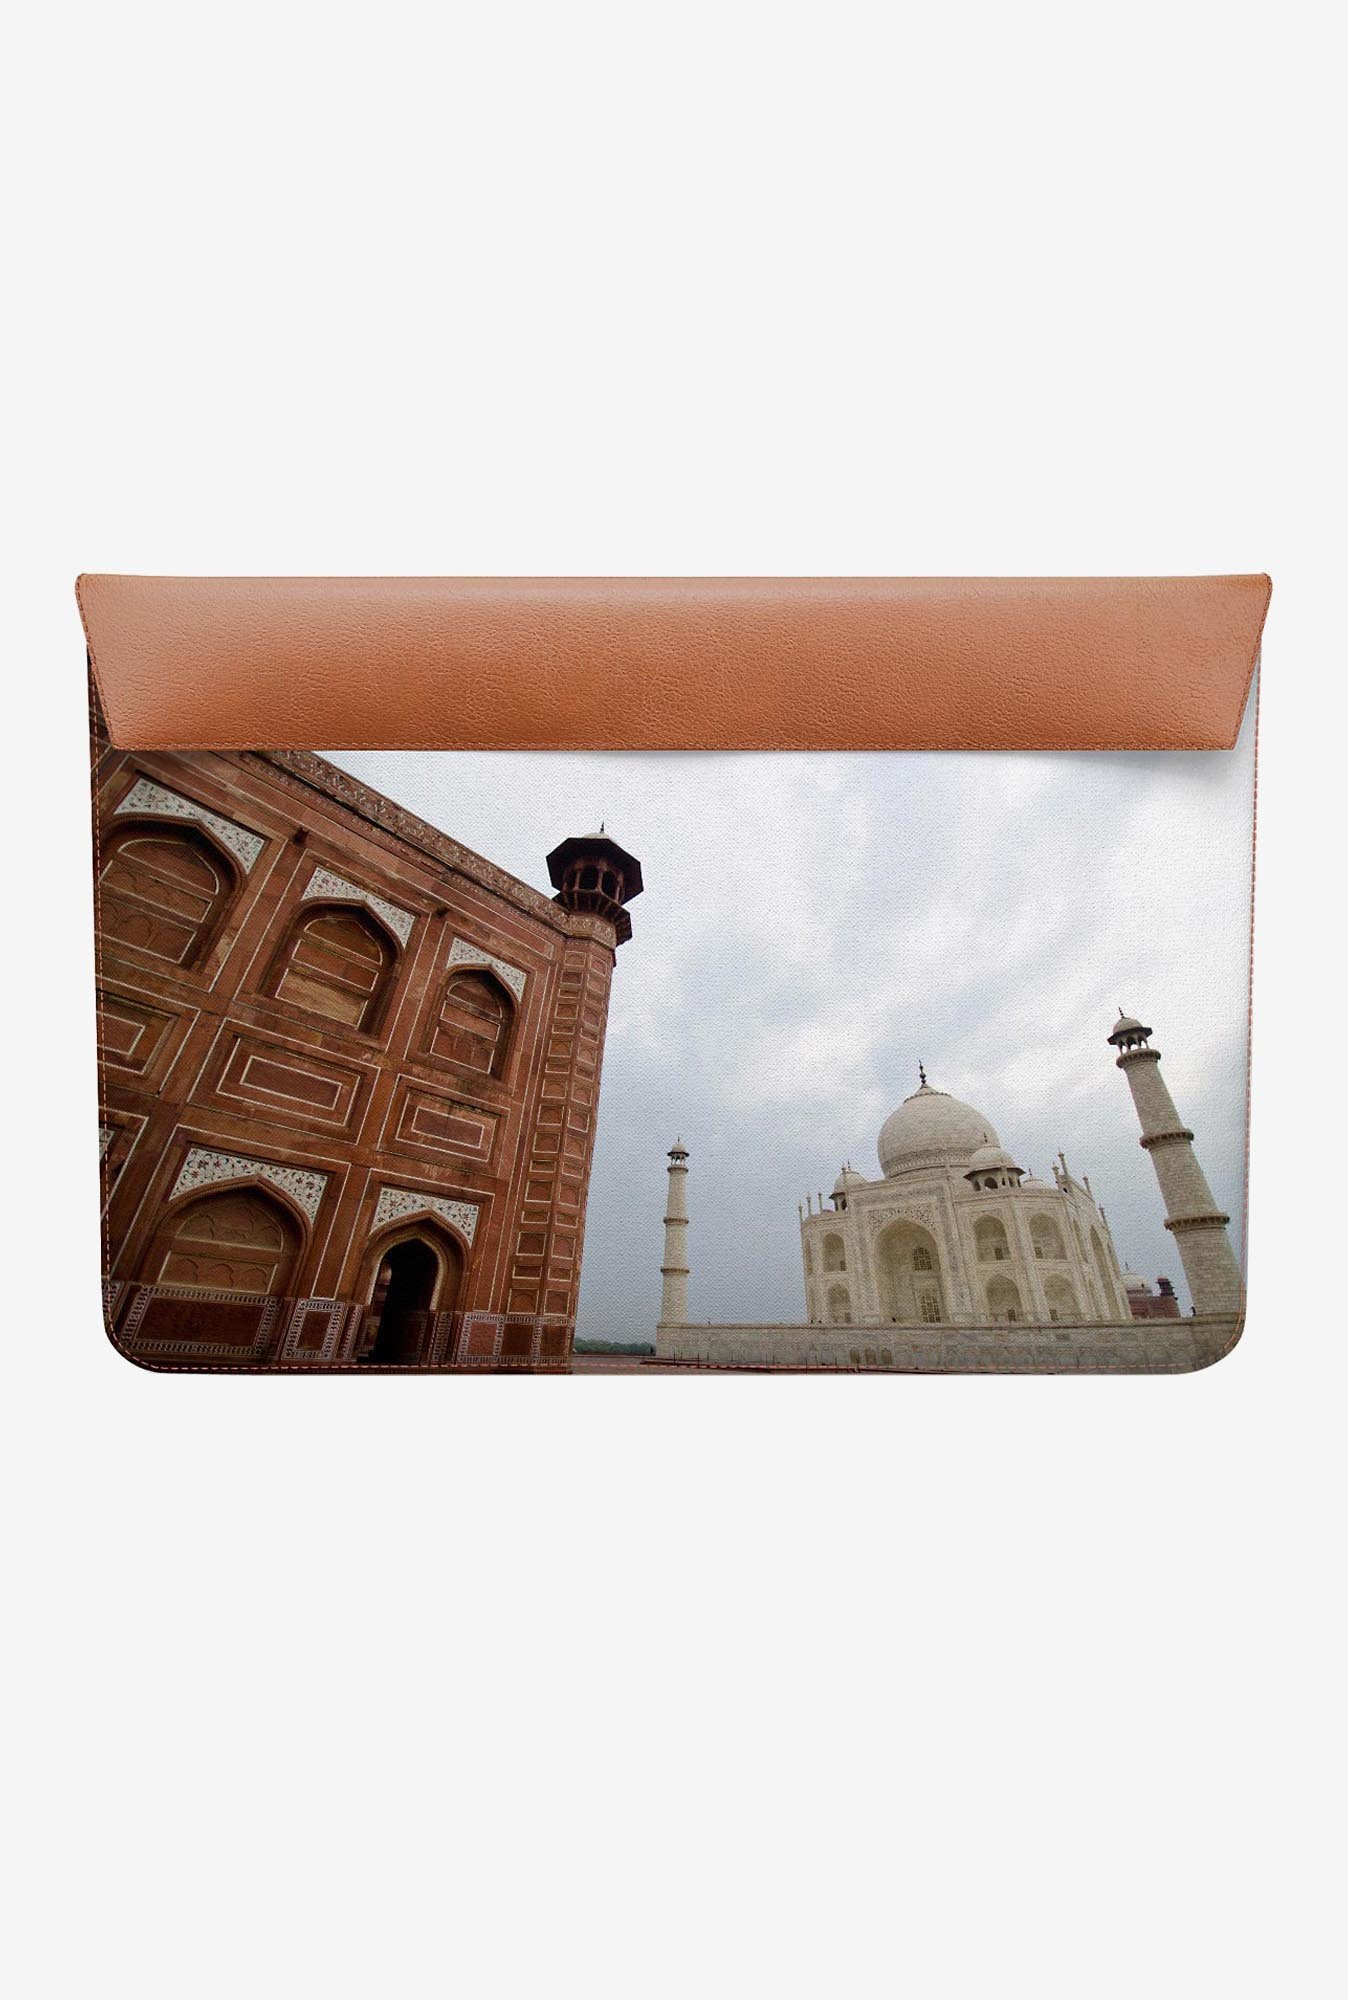 DailyObjects Taj Mahal MacBook Air 13 Envelope Sleeve